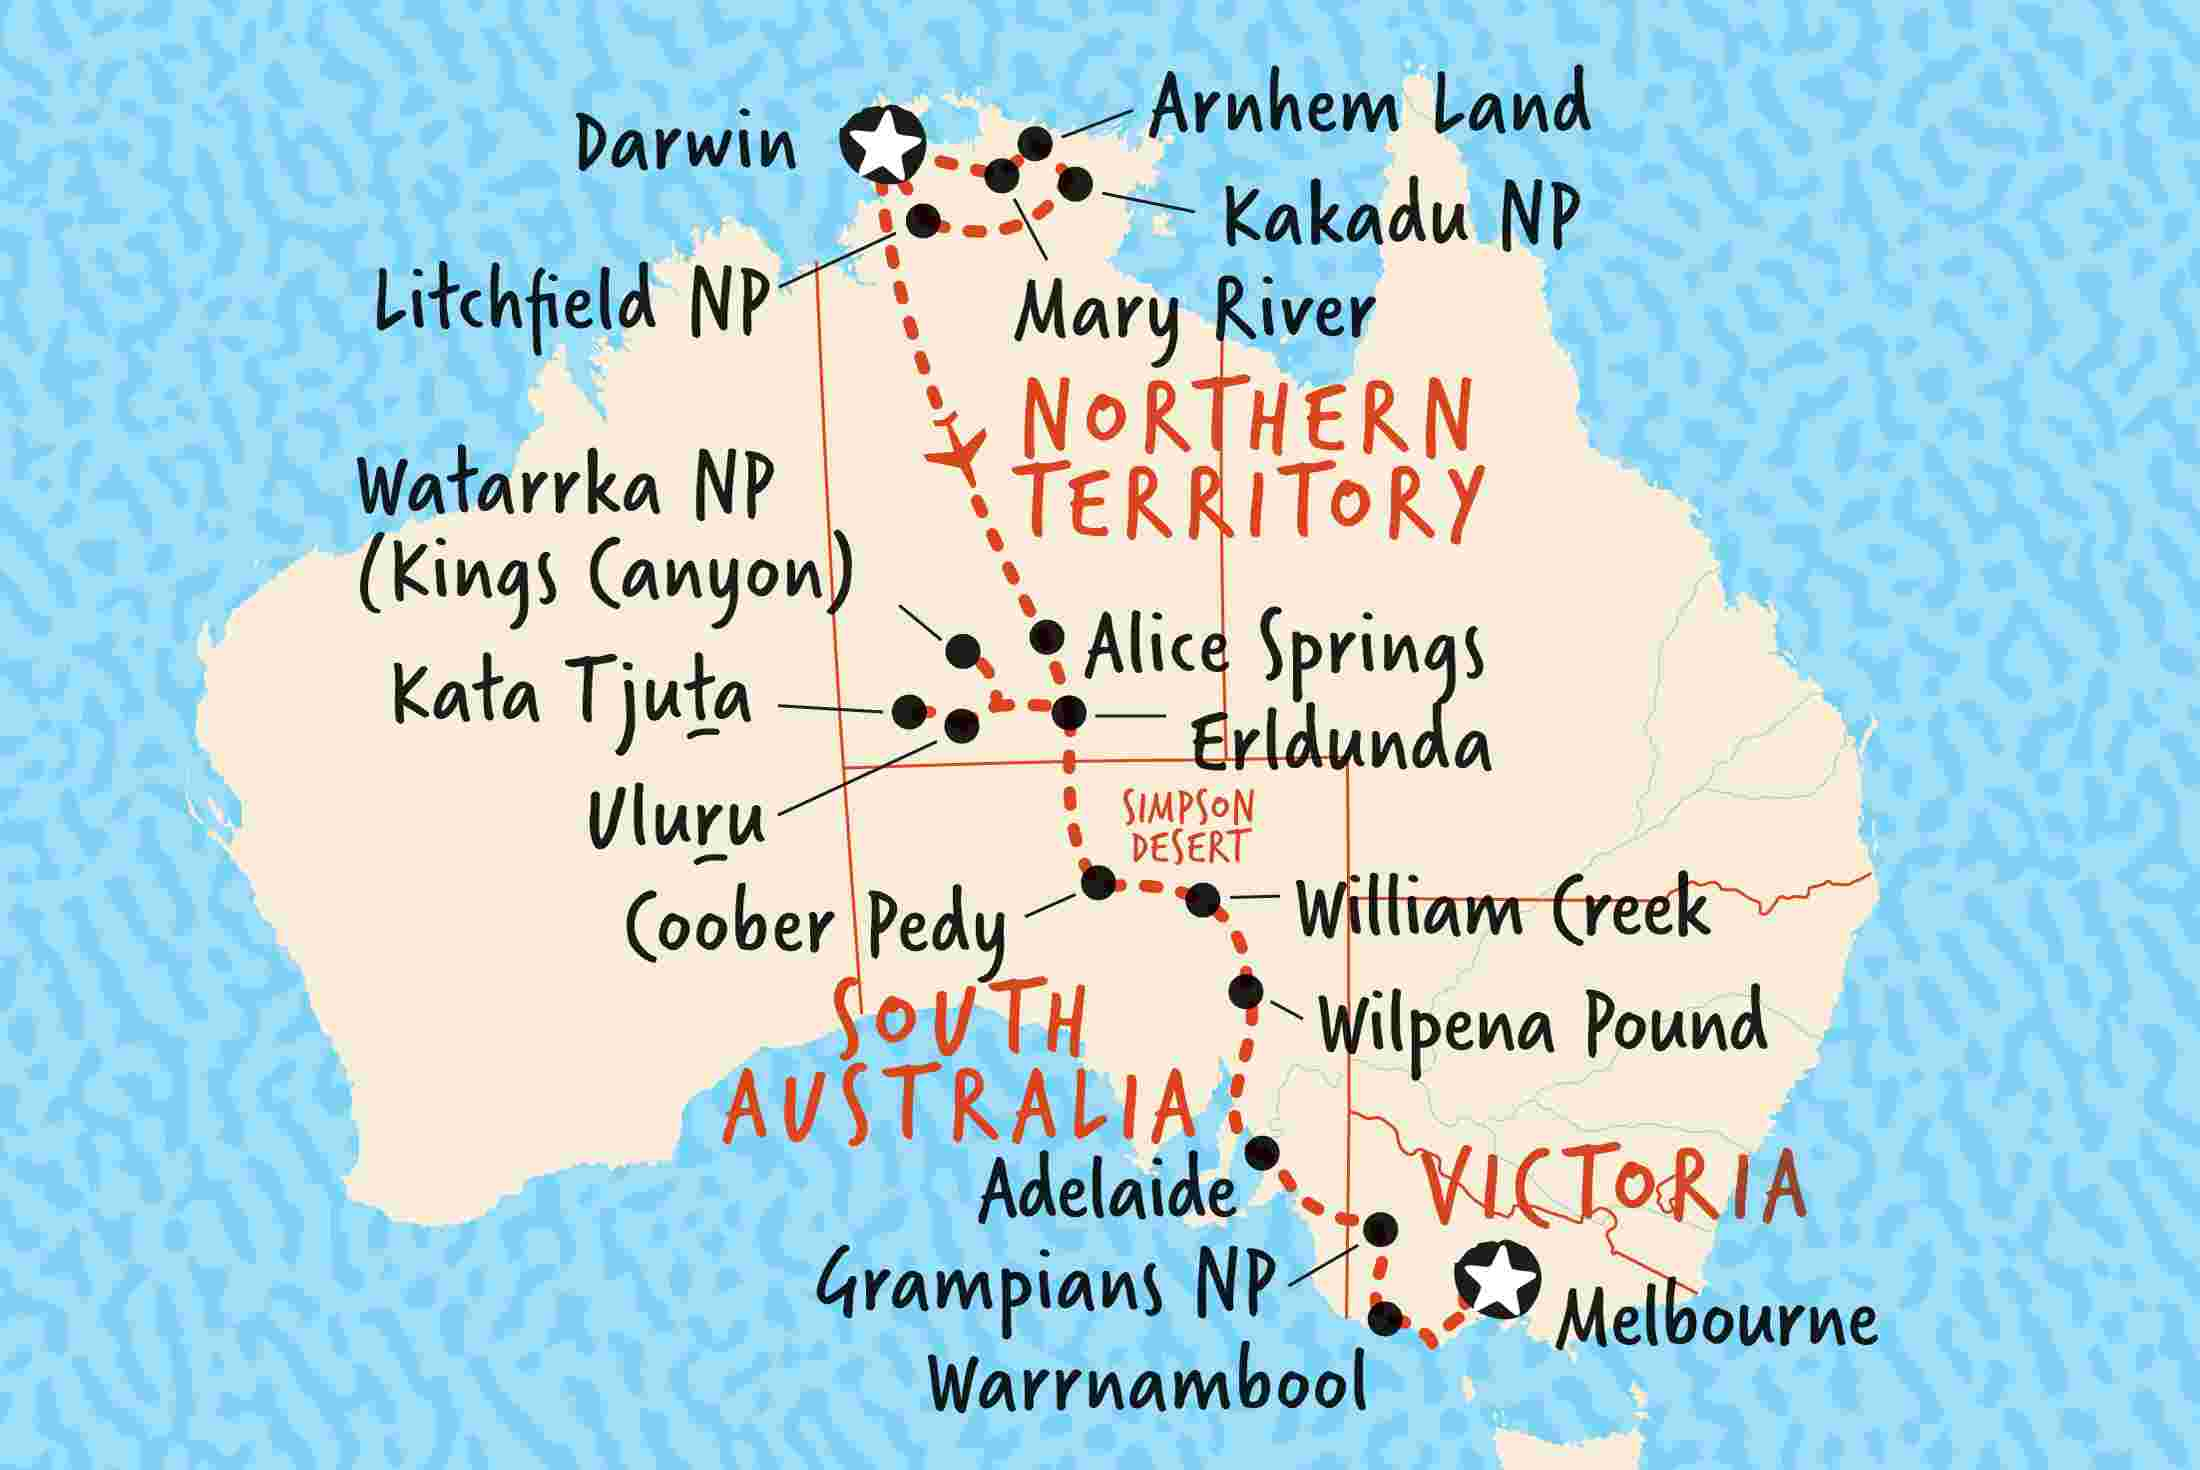 Darwin Australia Map Darwin to Melbourne Overland | Adventure Tours AU Darwin Australia Map